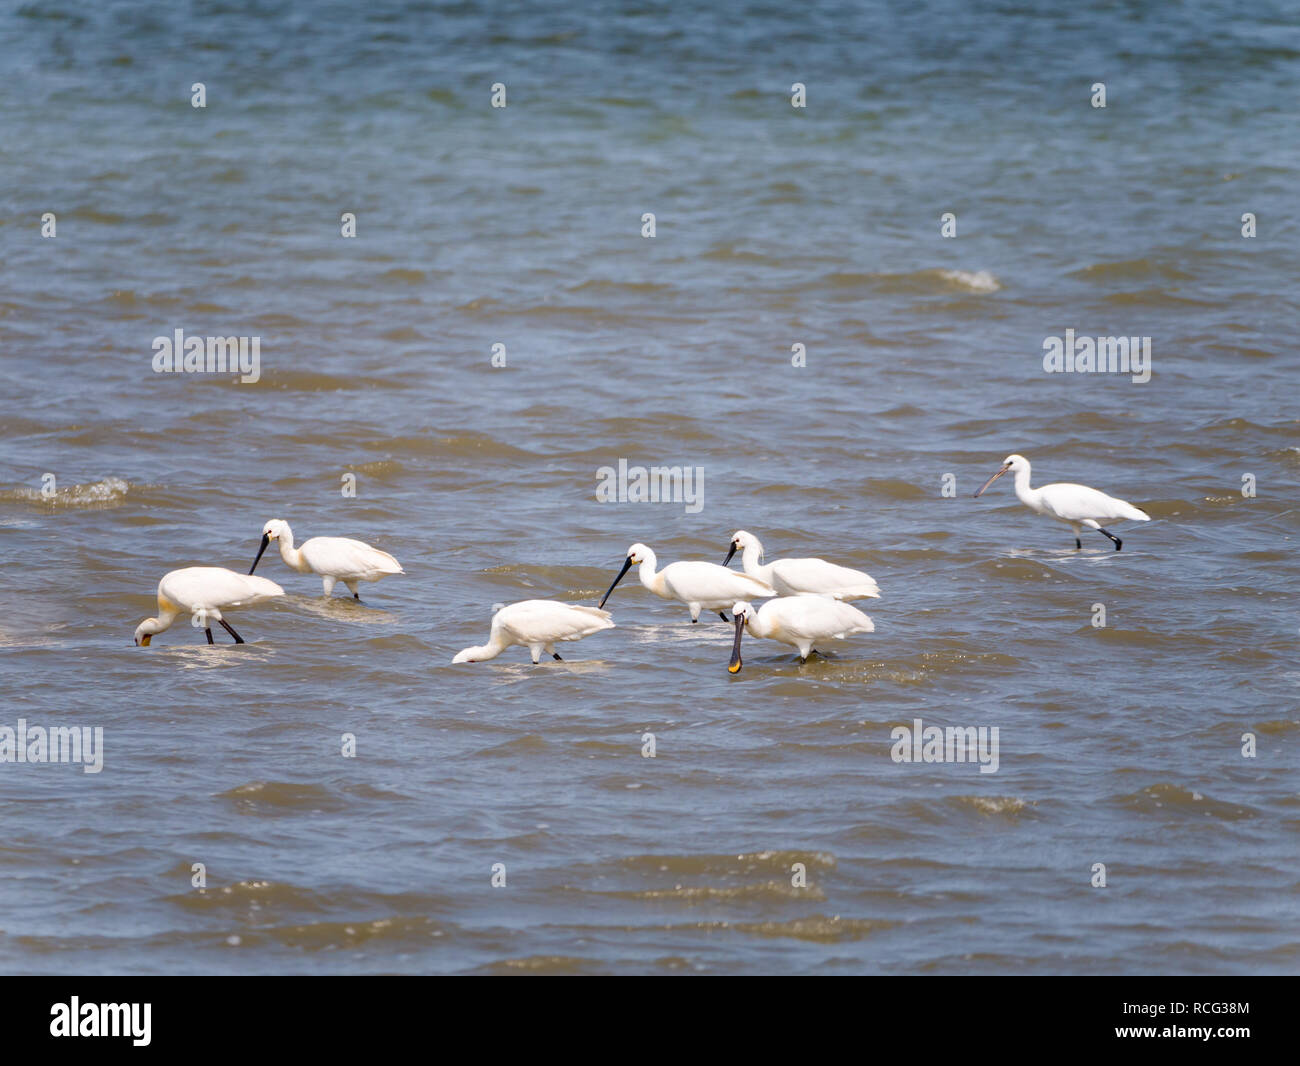 Group of Eurasian spoonbills, Platalea leucorodia, feeding in shallow water at low tide of North Sea, Netherlands Stock Photo